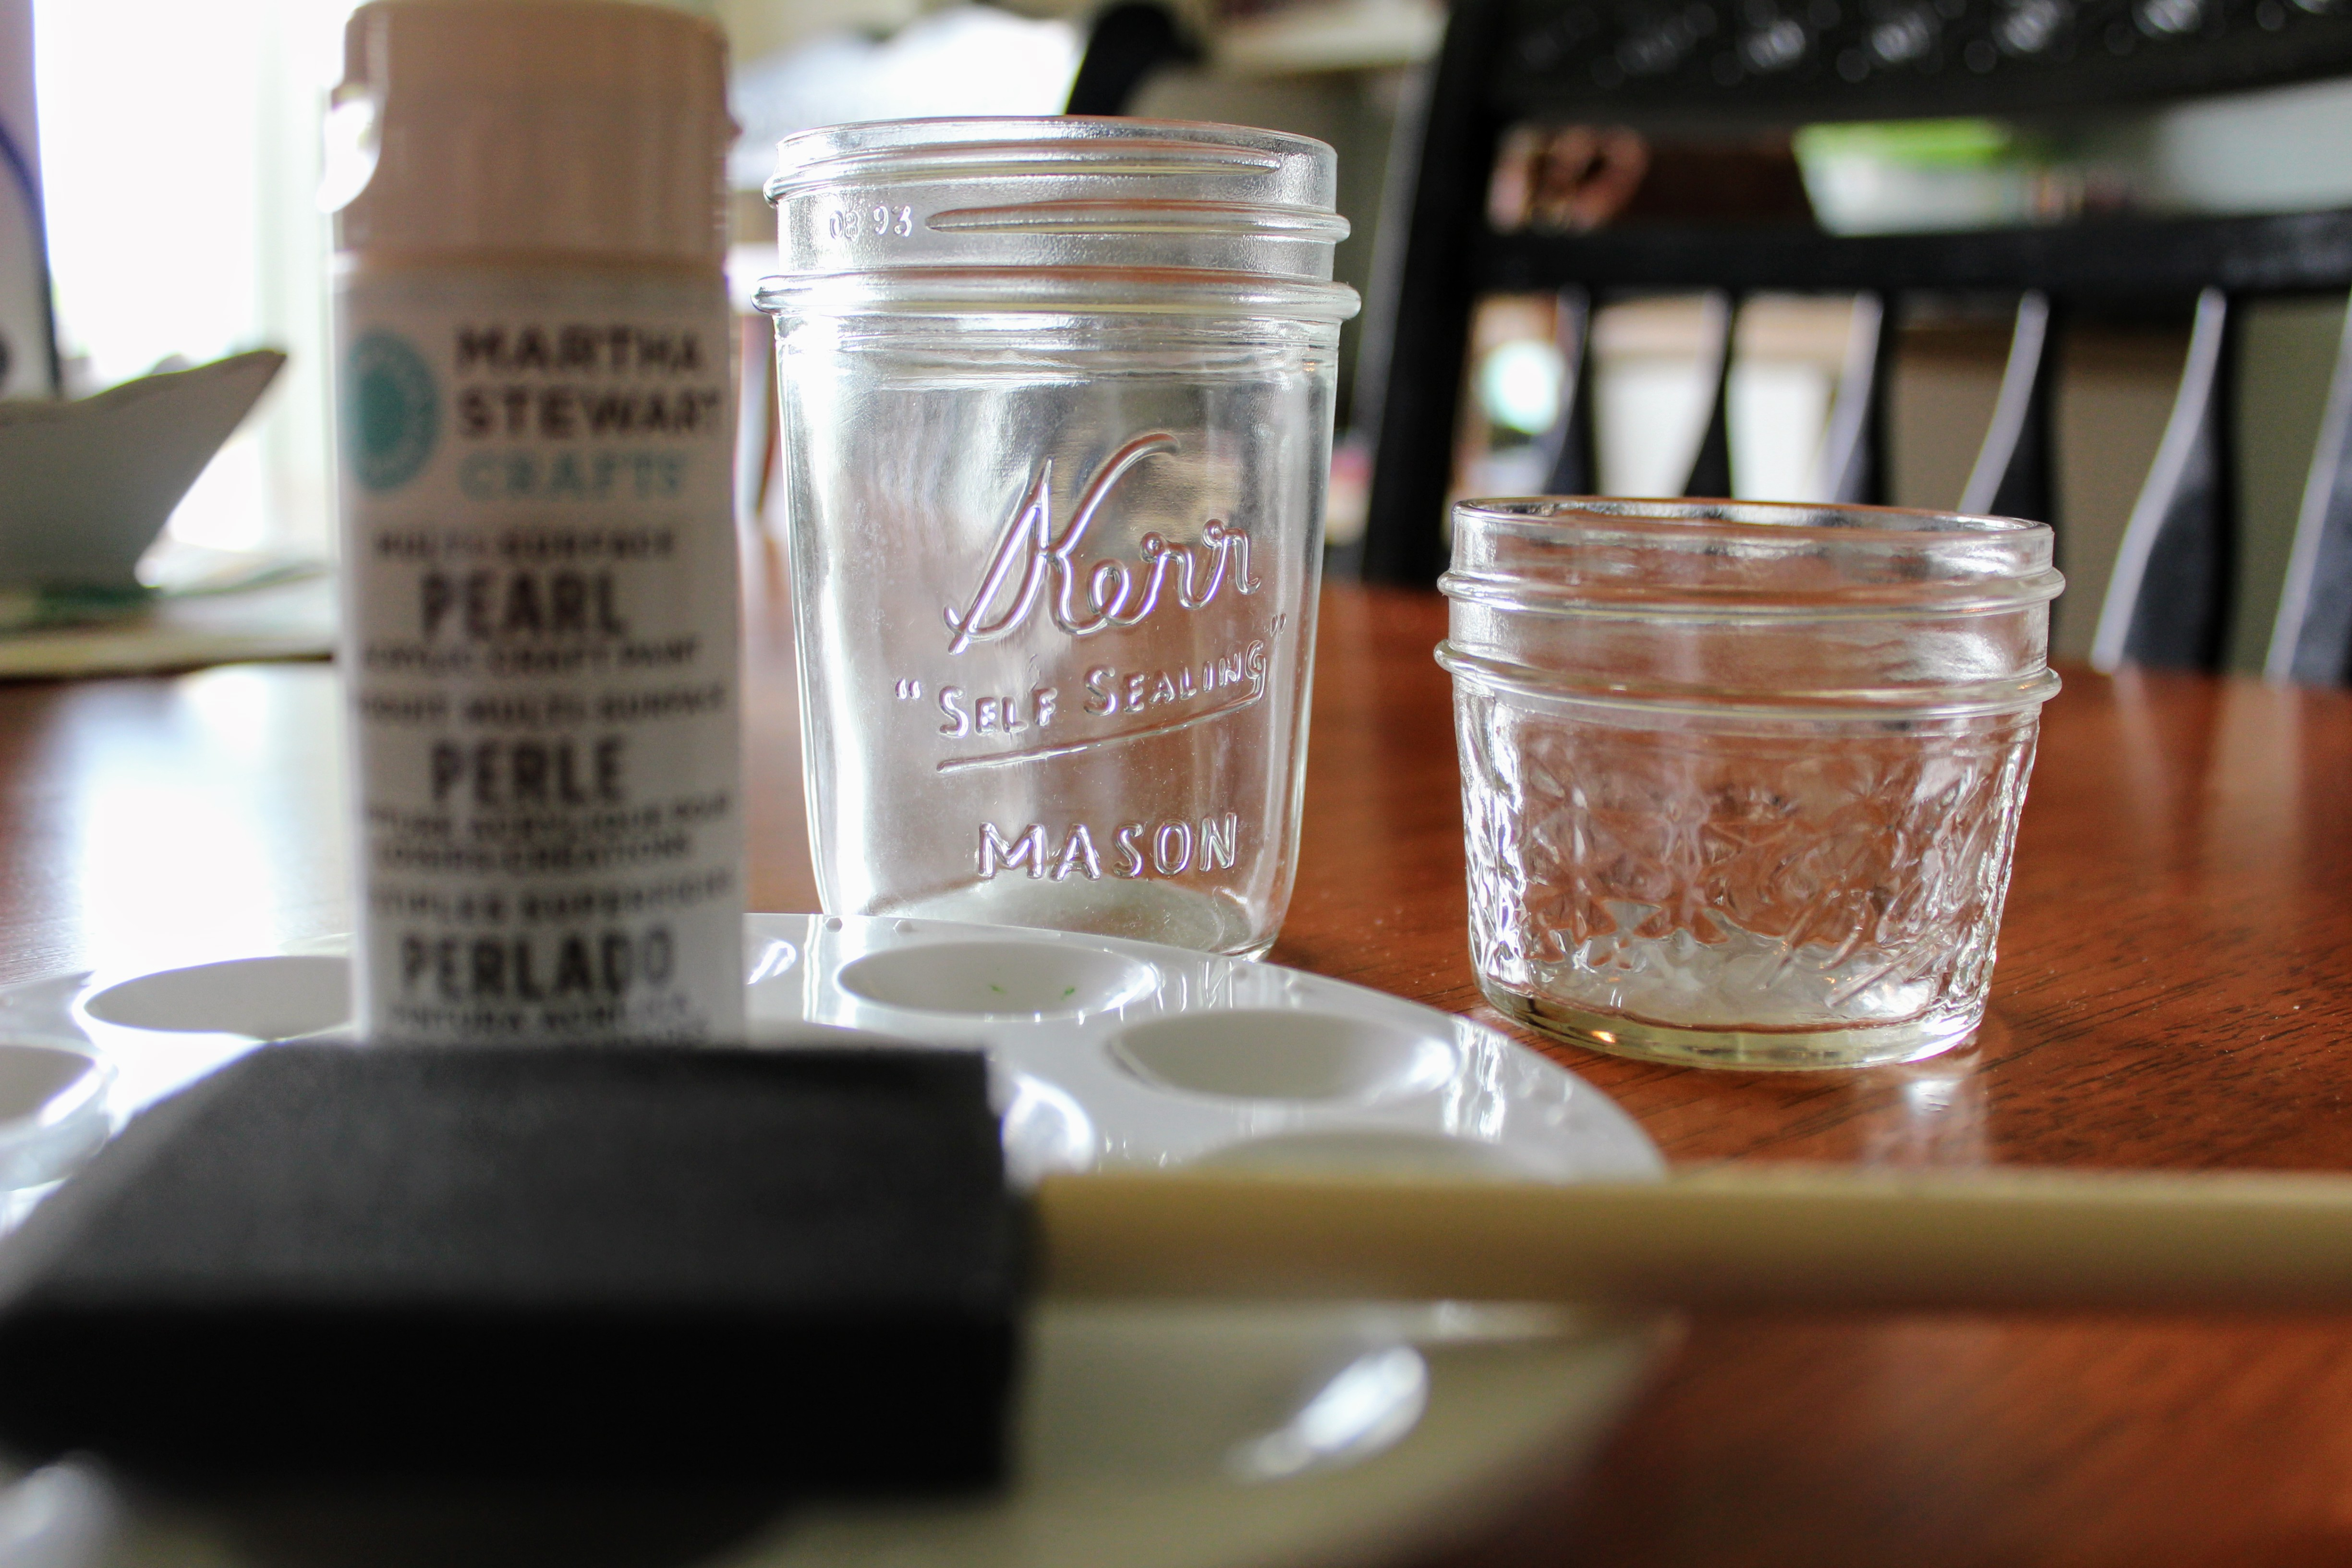 I Love Using This Martha Stewart Line Of Craft Paint. It Covers So Well And  This Particular Color, Mother Of Pearl, Has Just A Hint Of Iridescence To  Make ...